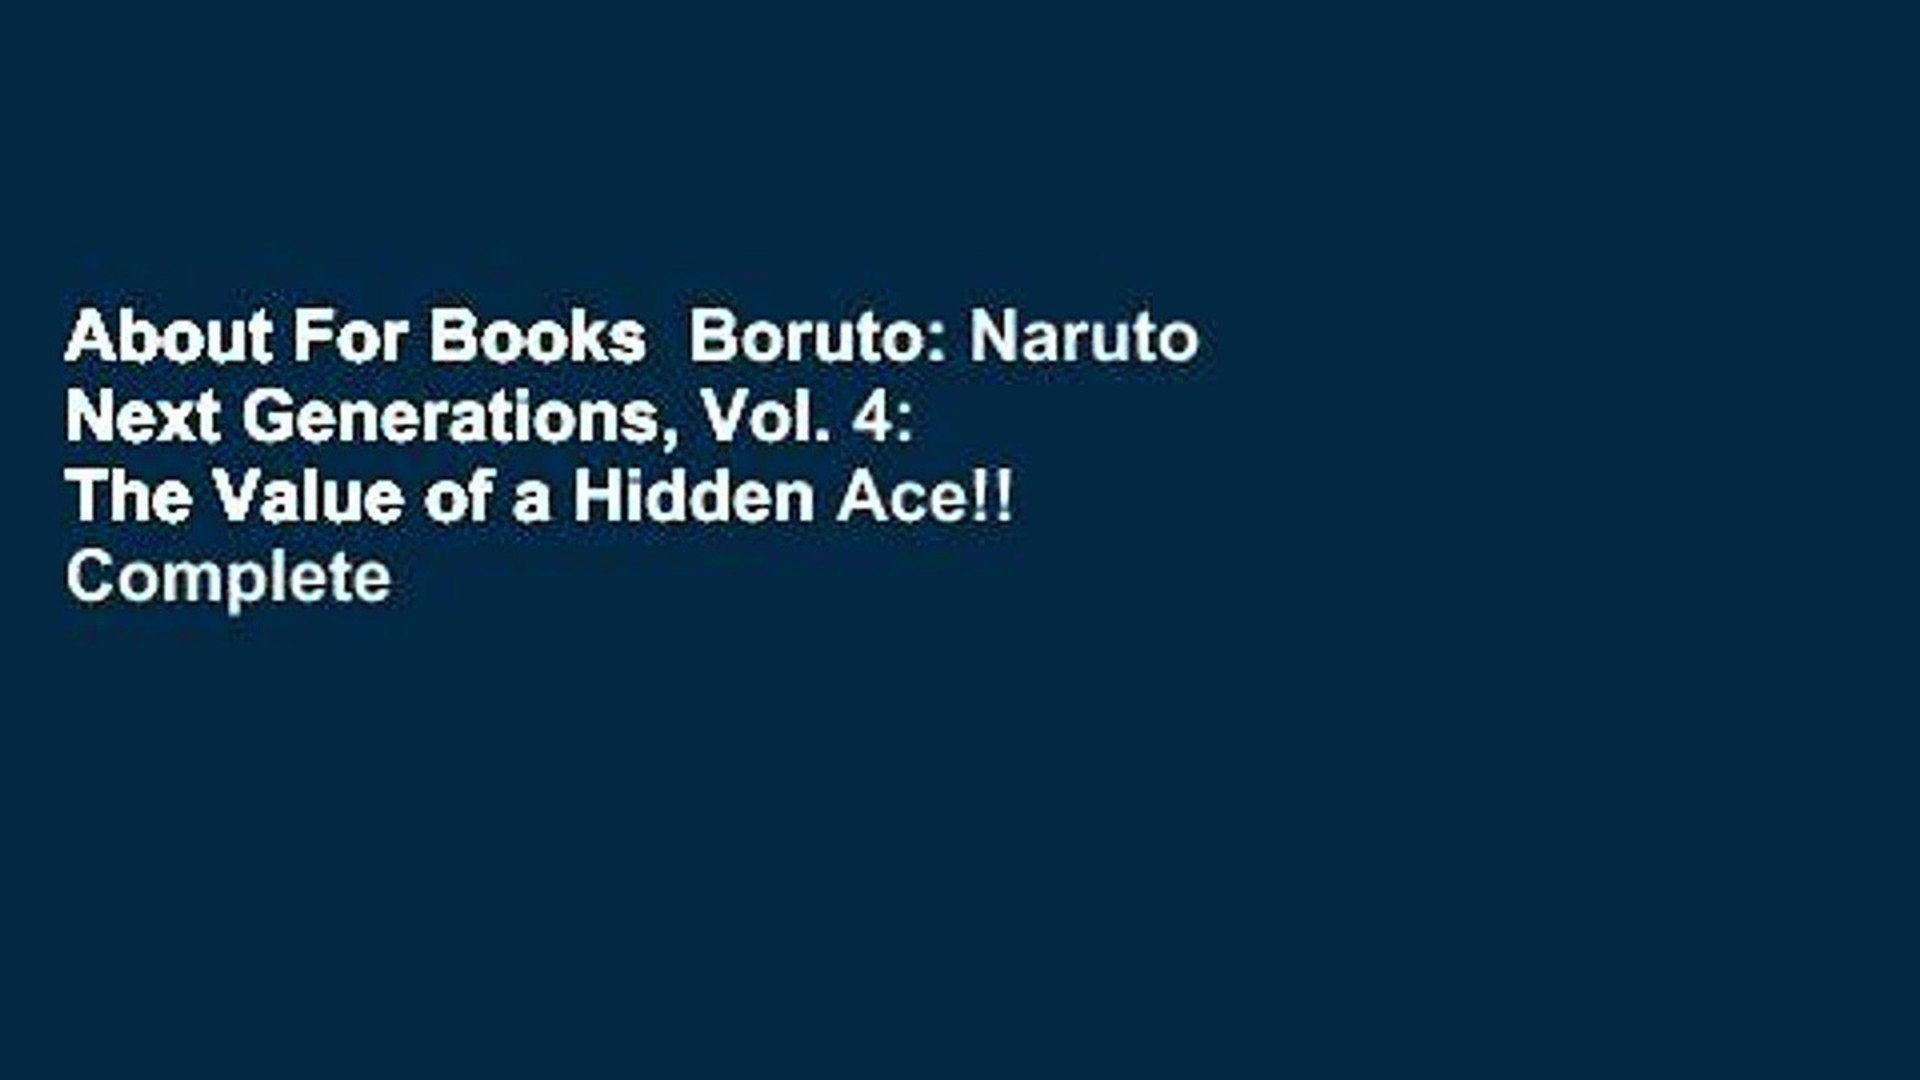 About For Books  Boruto: Naruto Next Generations, Vol. 4: The Value of a Hidden Ace!! Complete